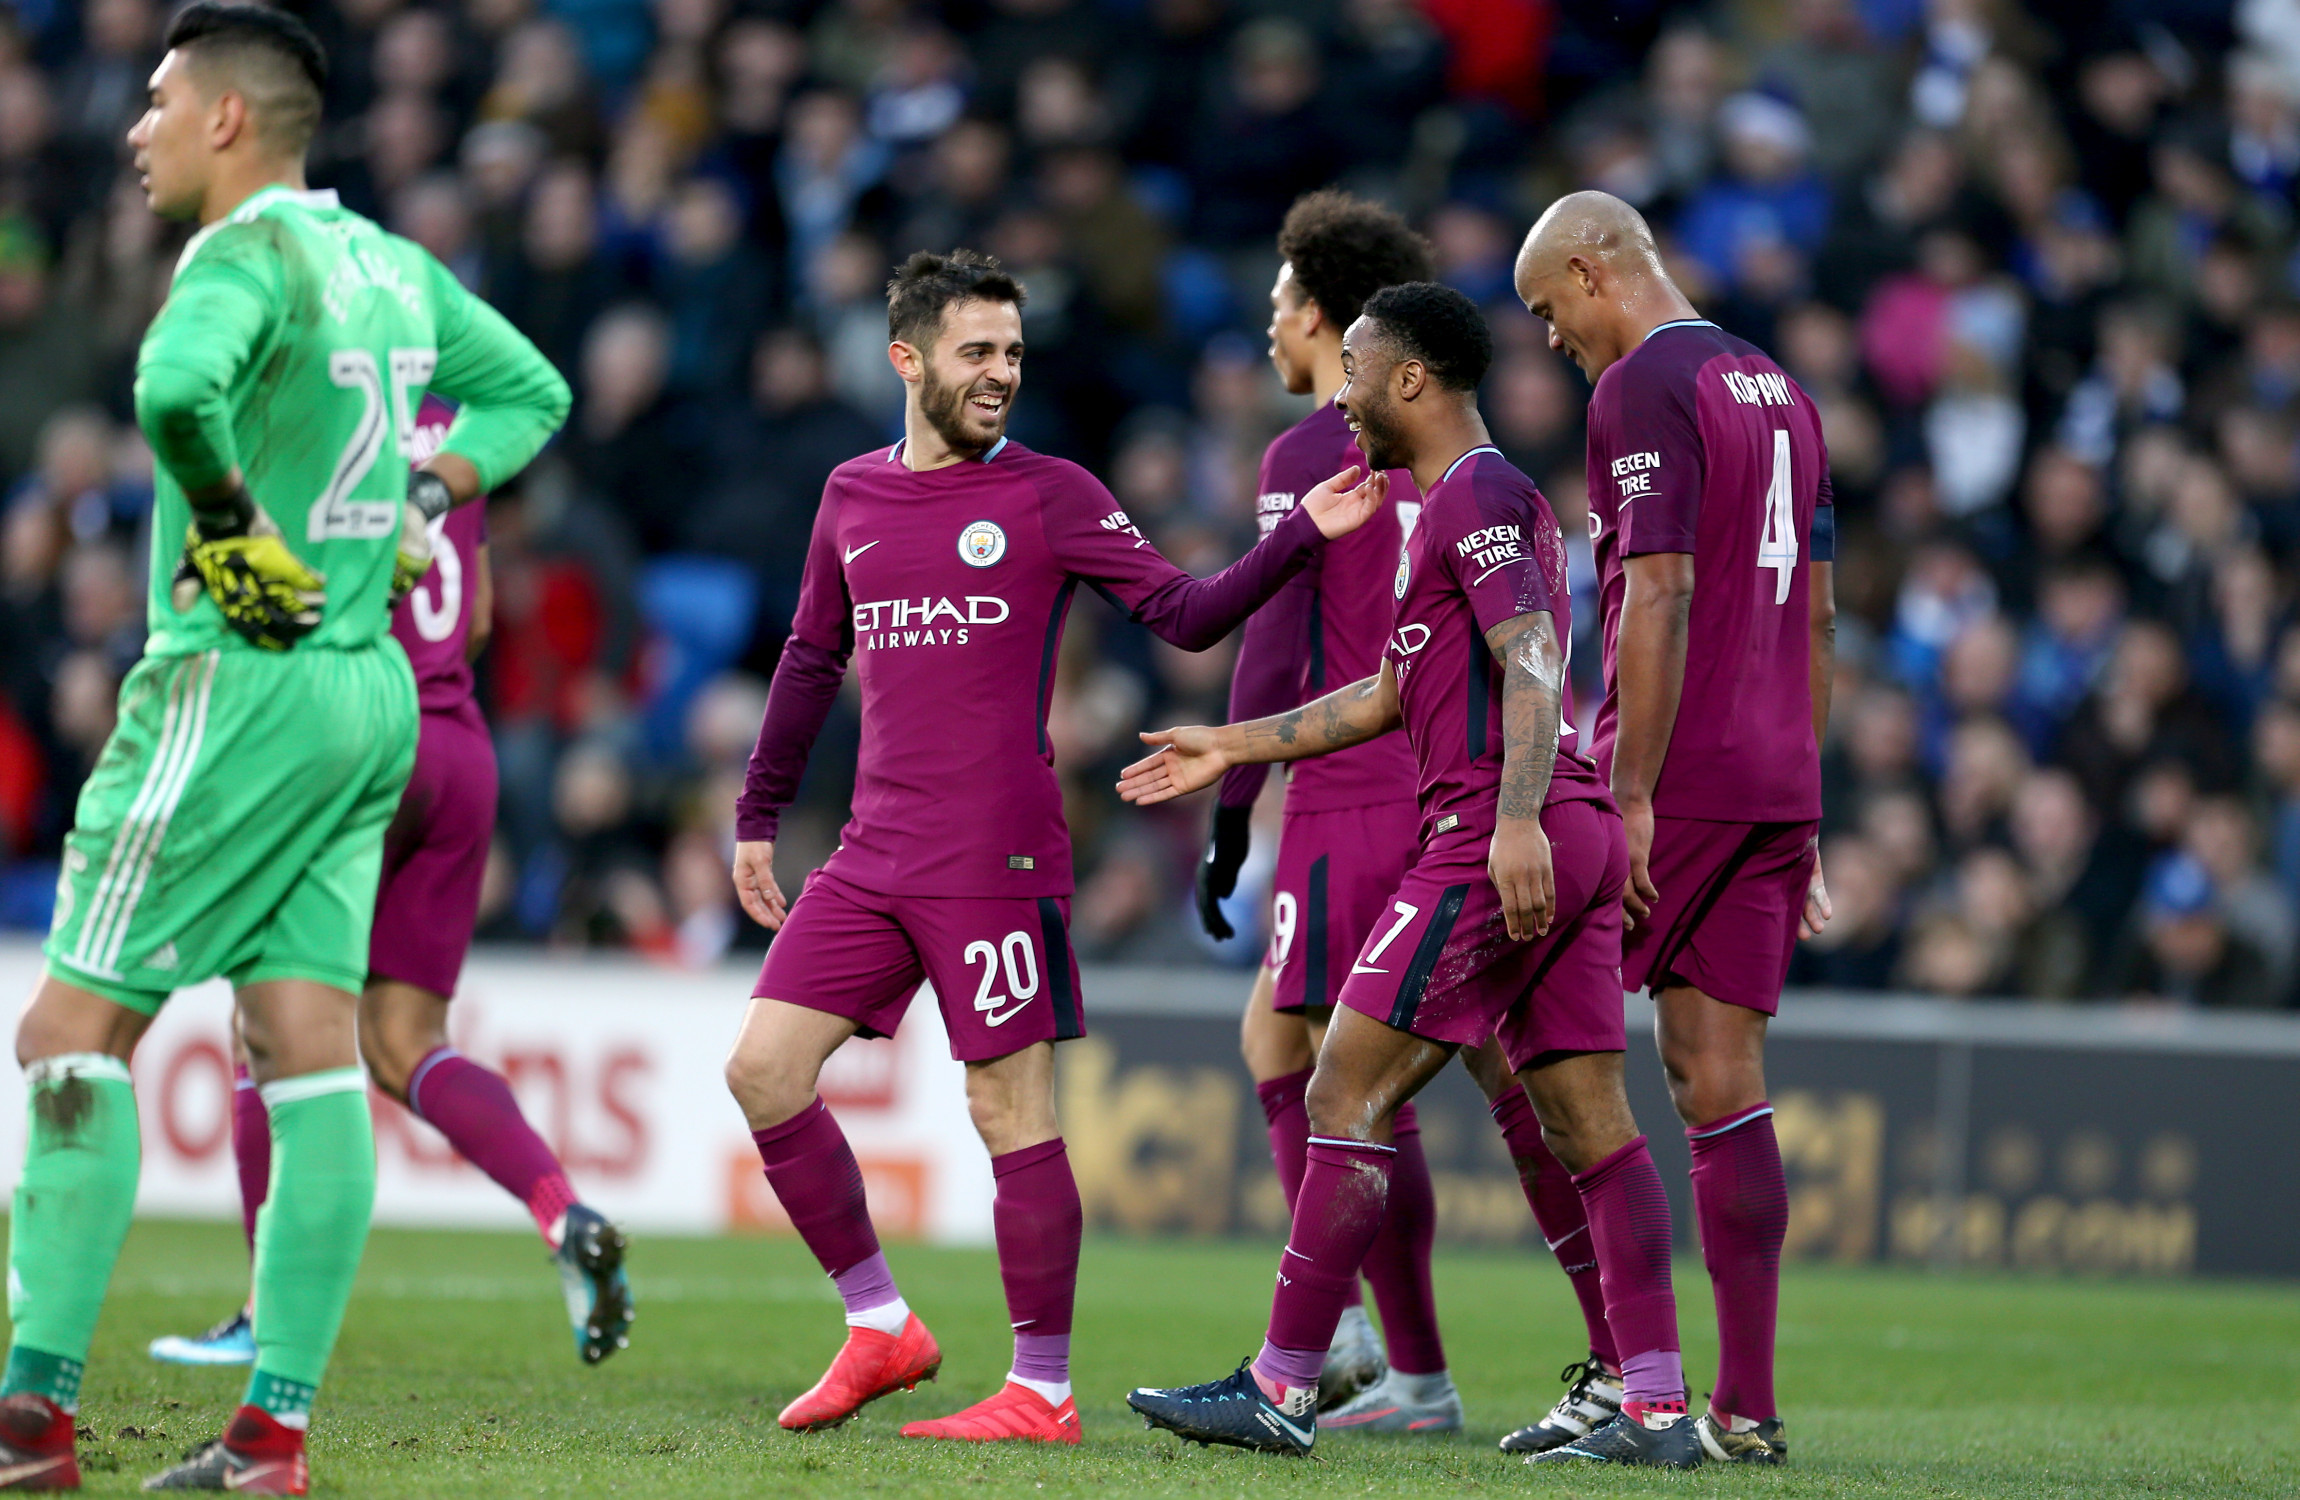 FA Cup: Manchester City get chance for revenge over Wigan Athletic